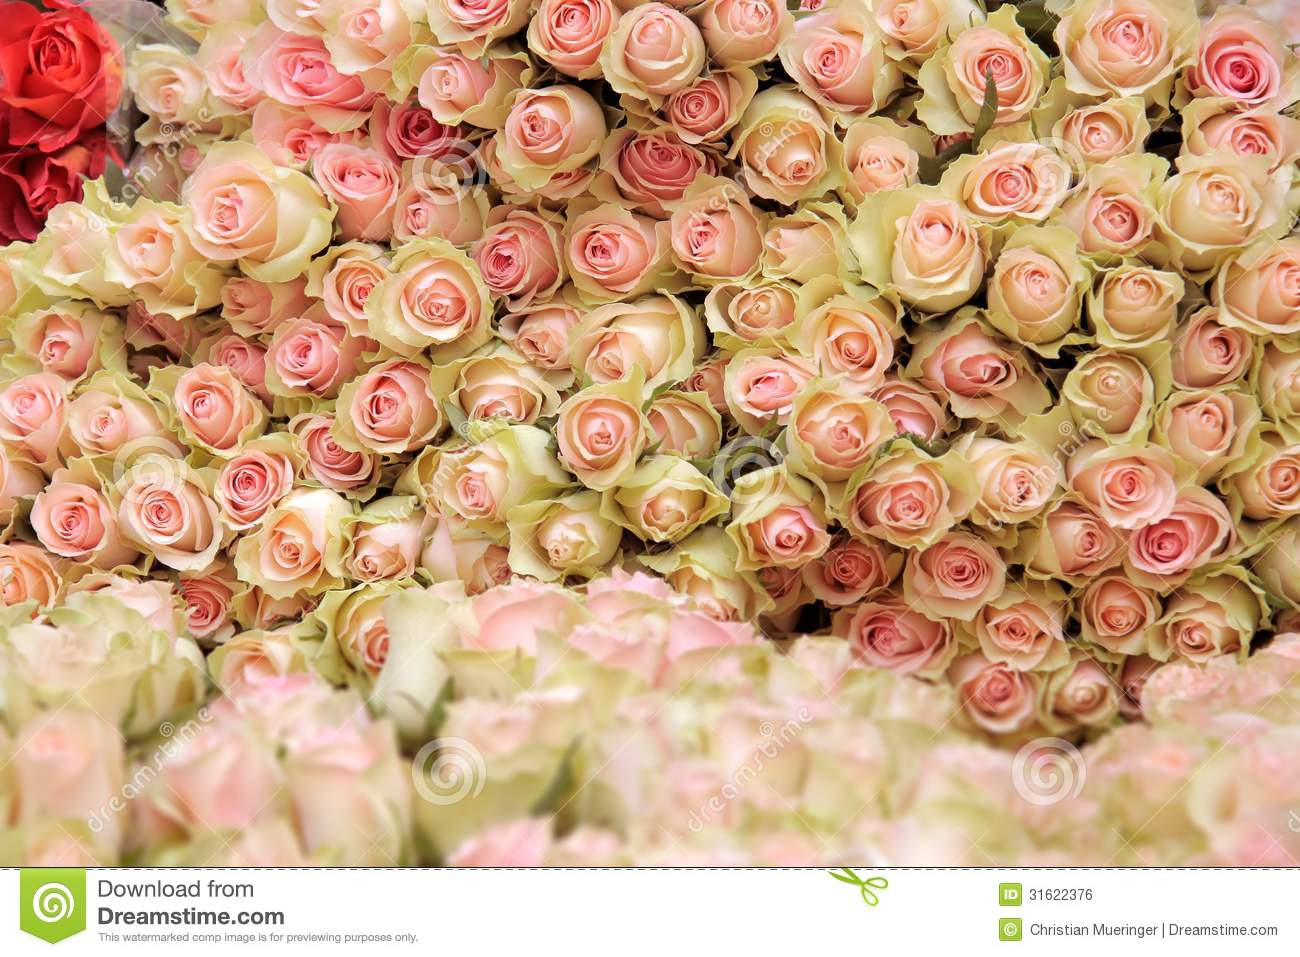 Baby Pink Rose Flowers Big bunch of cut light pink